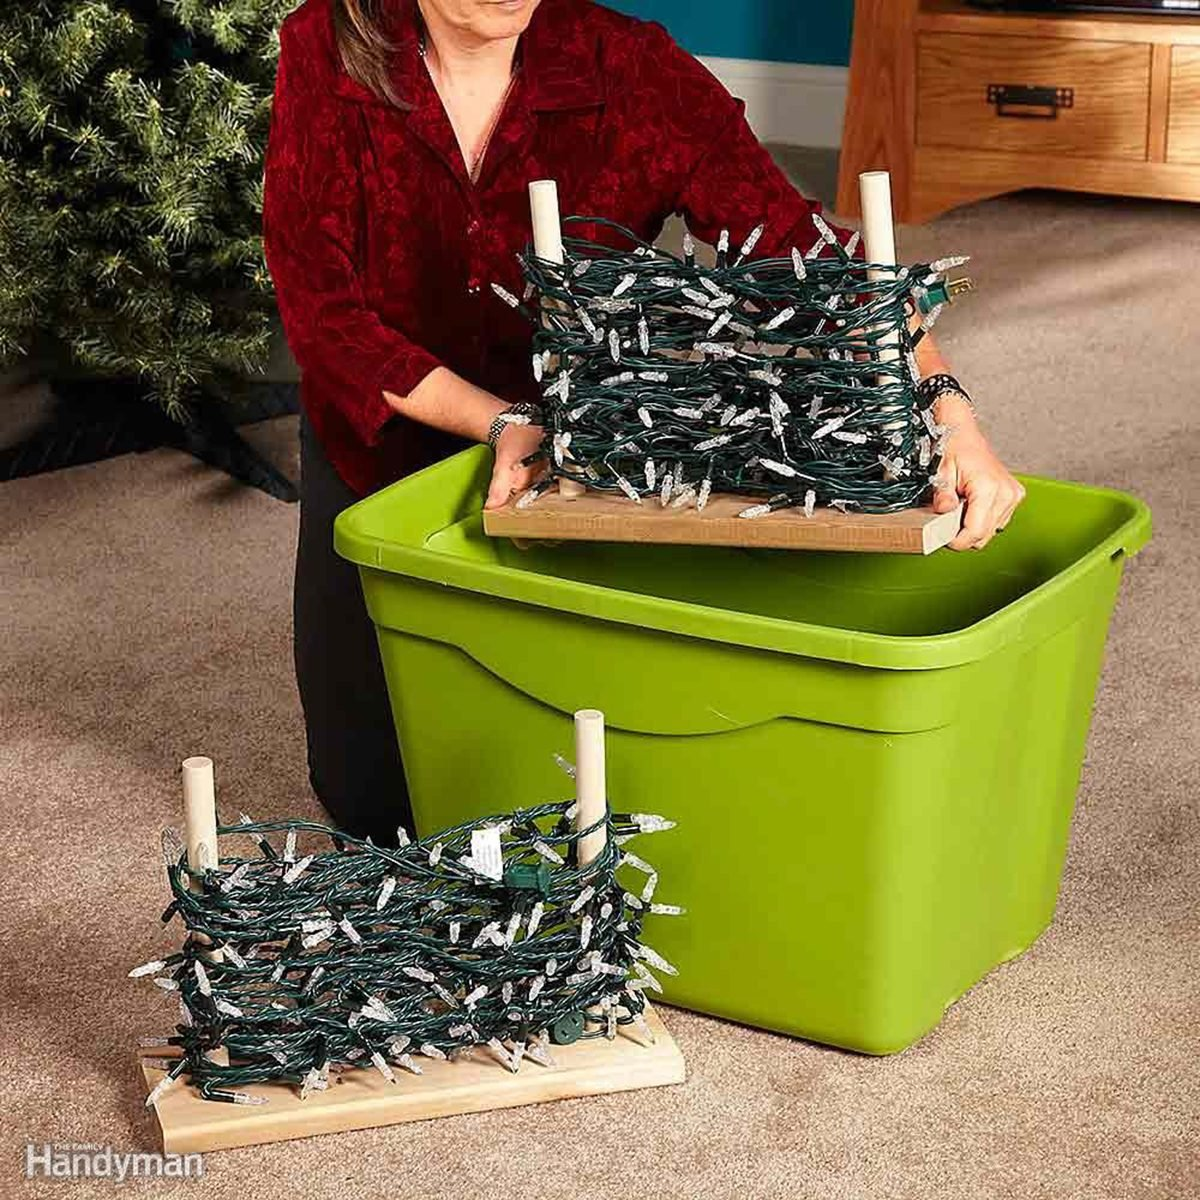 Storing Christmas lights wrapped around wooden pegs and being put into a lime green plastic tub